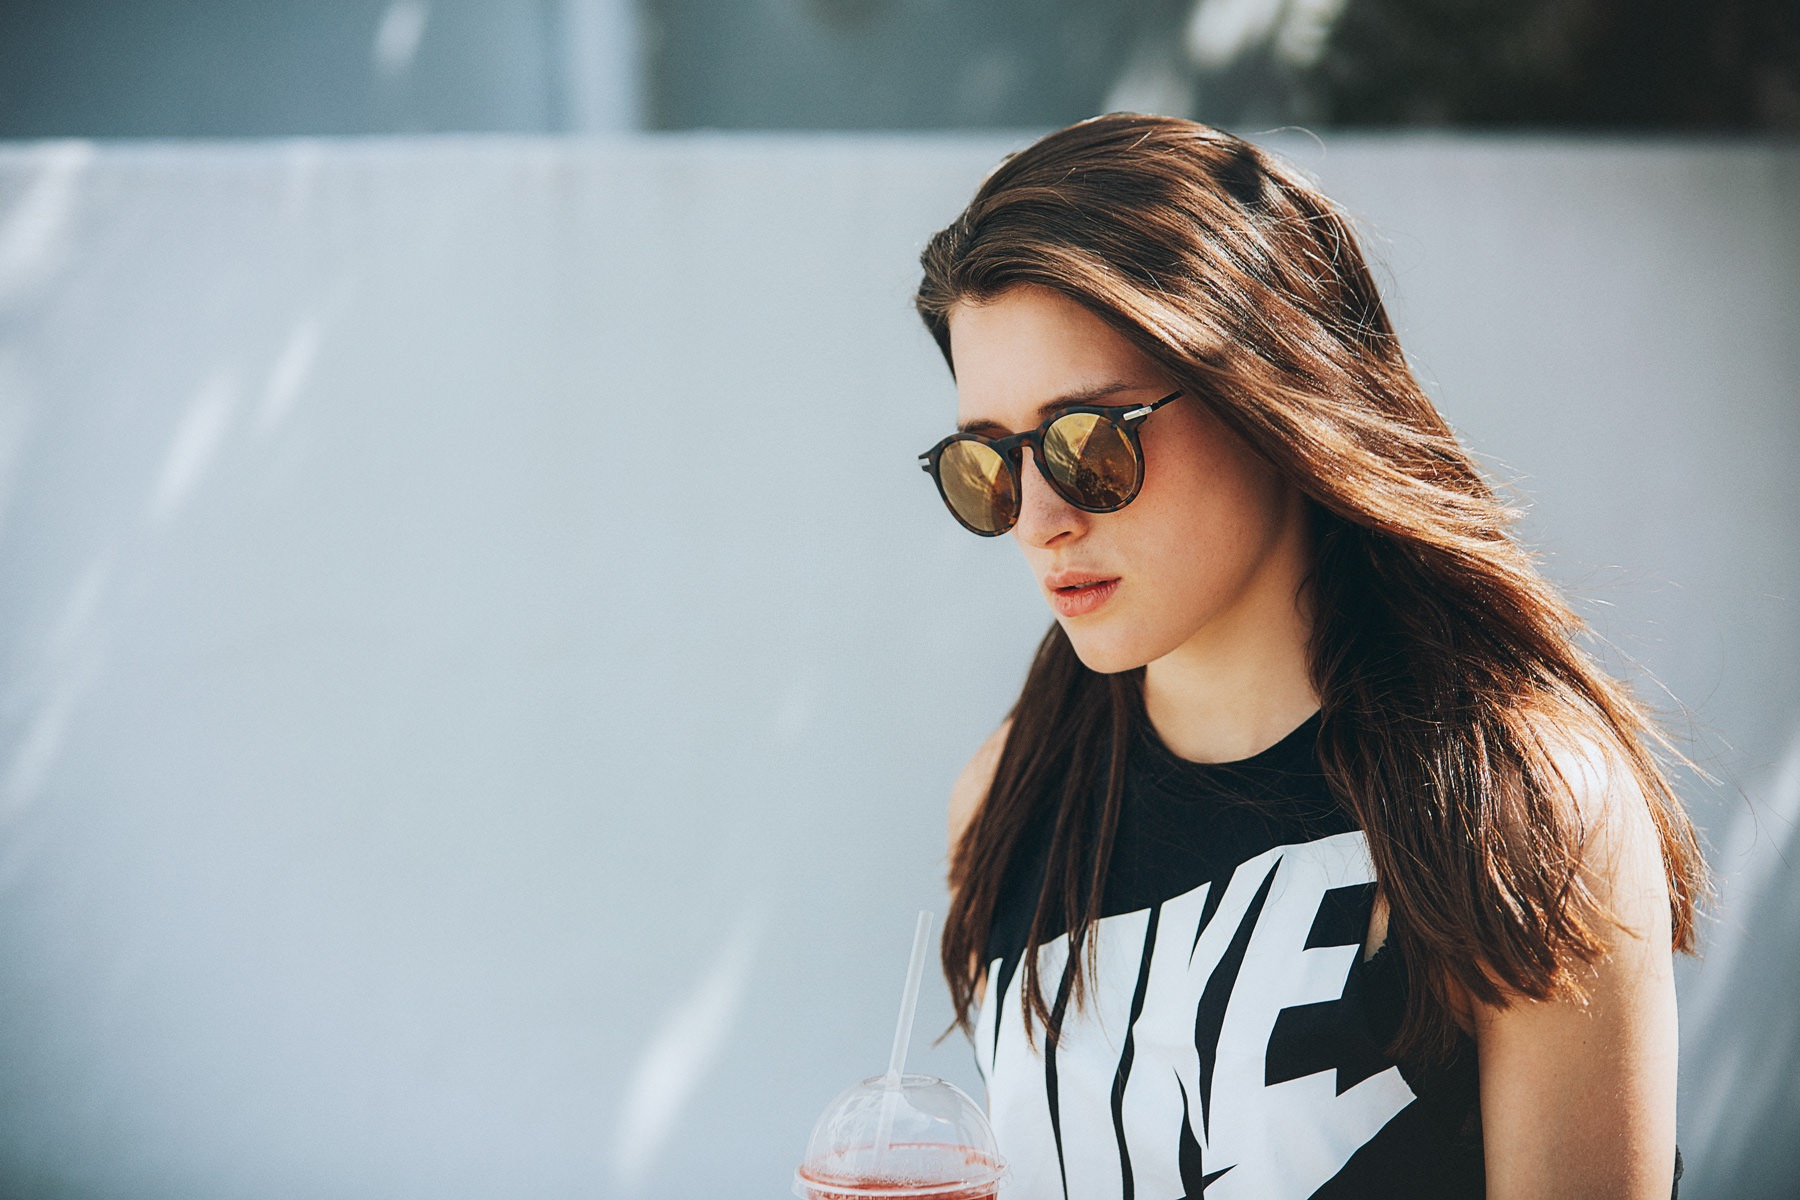 ­photo, photos, photography, photographer, photographers, woman, women, blur, blurred background, drink, sunglasses, nike, candid, sunny, sunlight